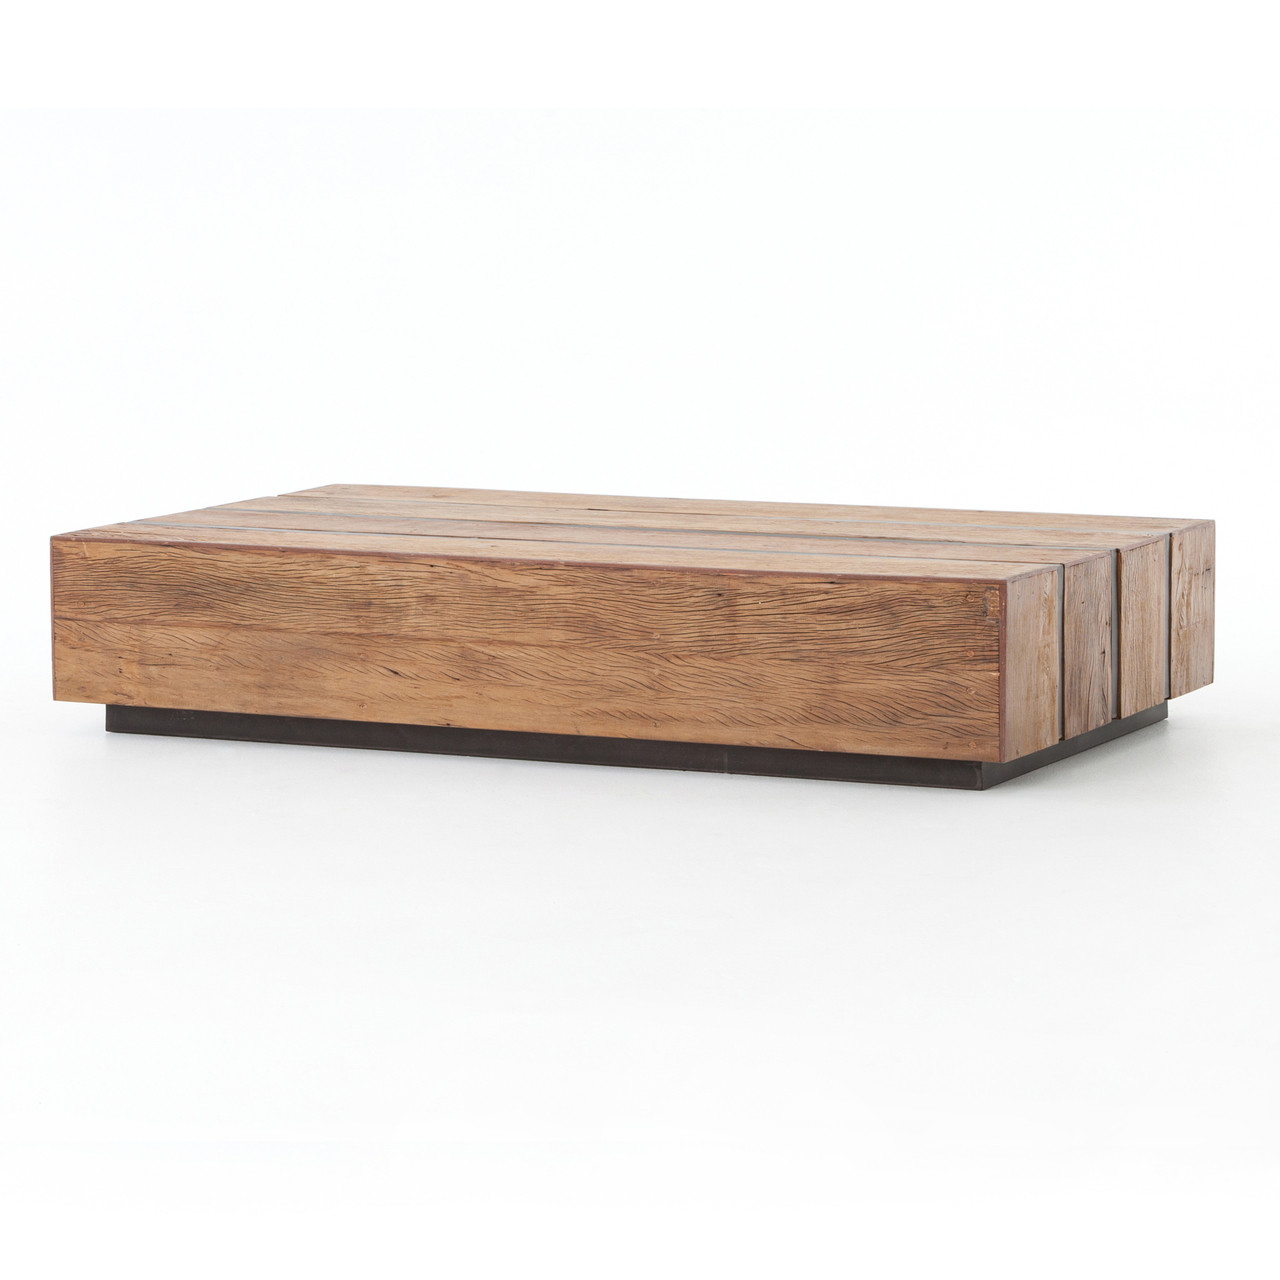 Grady reclaimed peroba wood slab coffee table 70 zin home grady reclaimed peroba wood slab coffee table 70 geotapseo Image collections